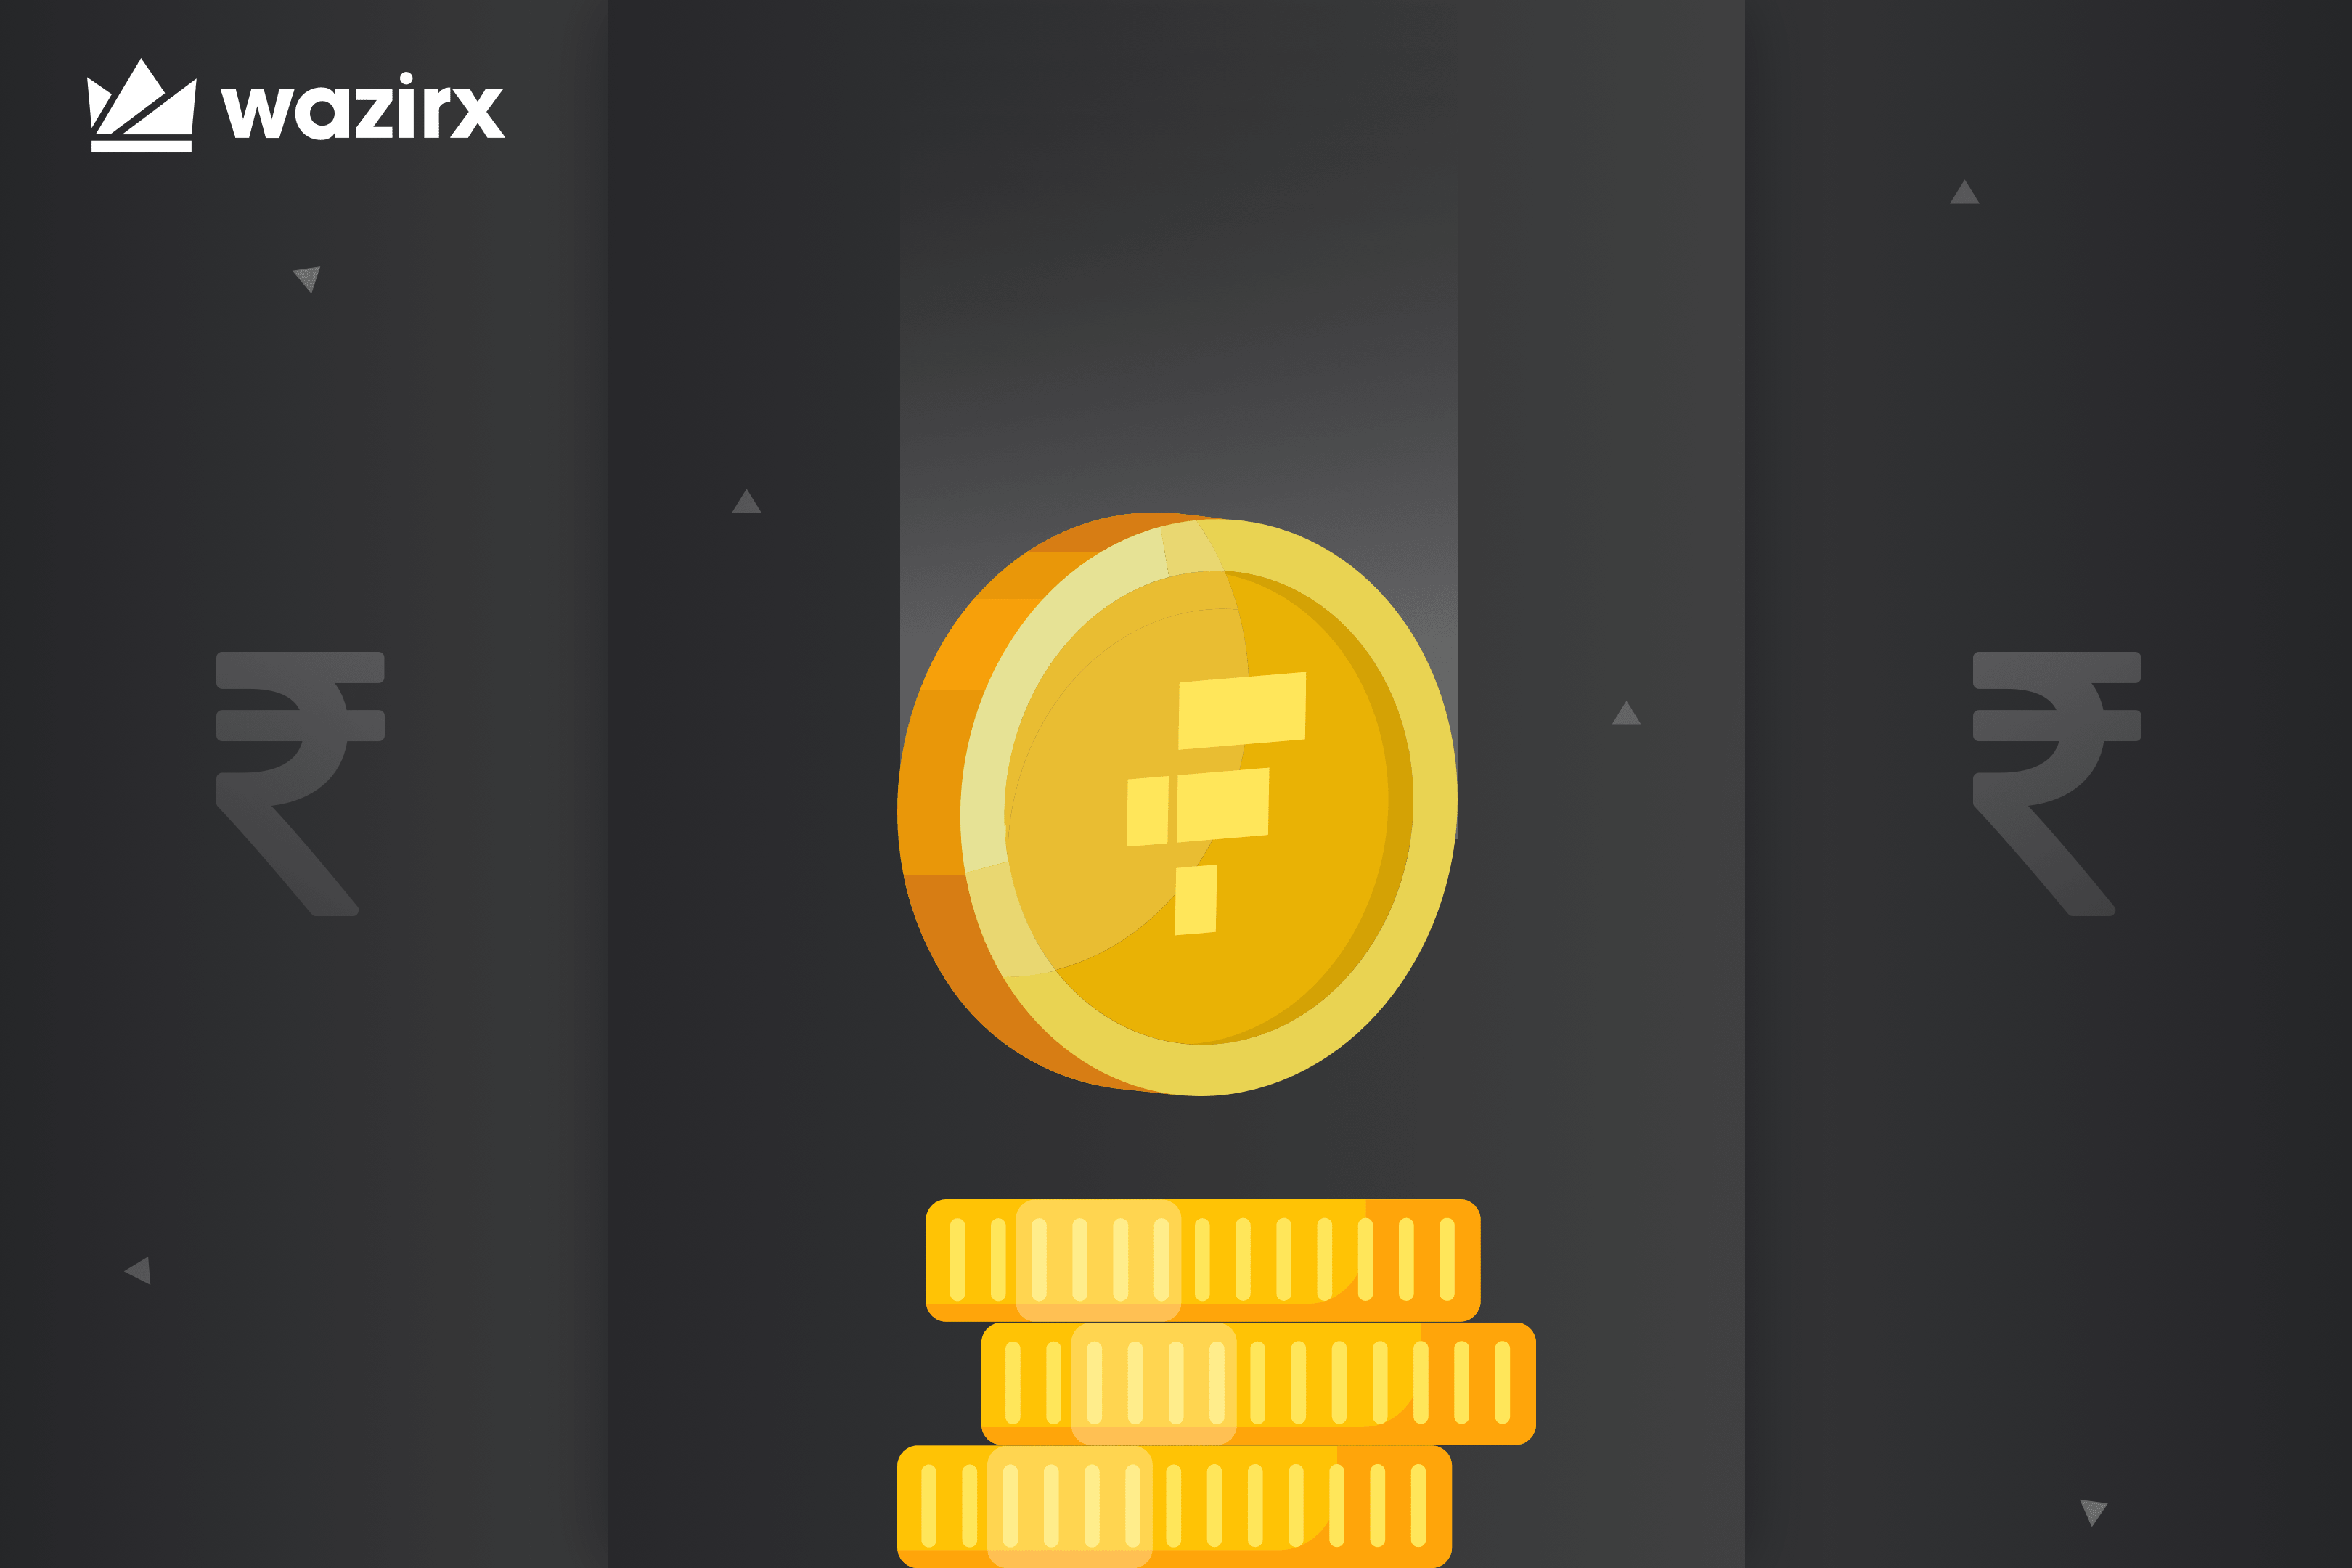 FTT/INR trading is live on WazirX